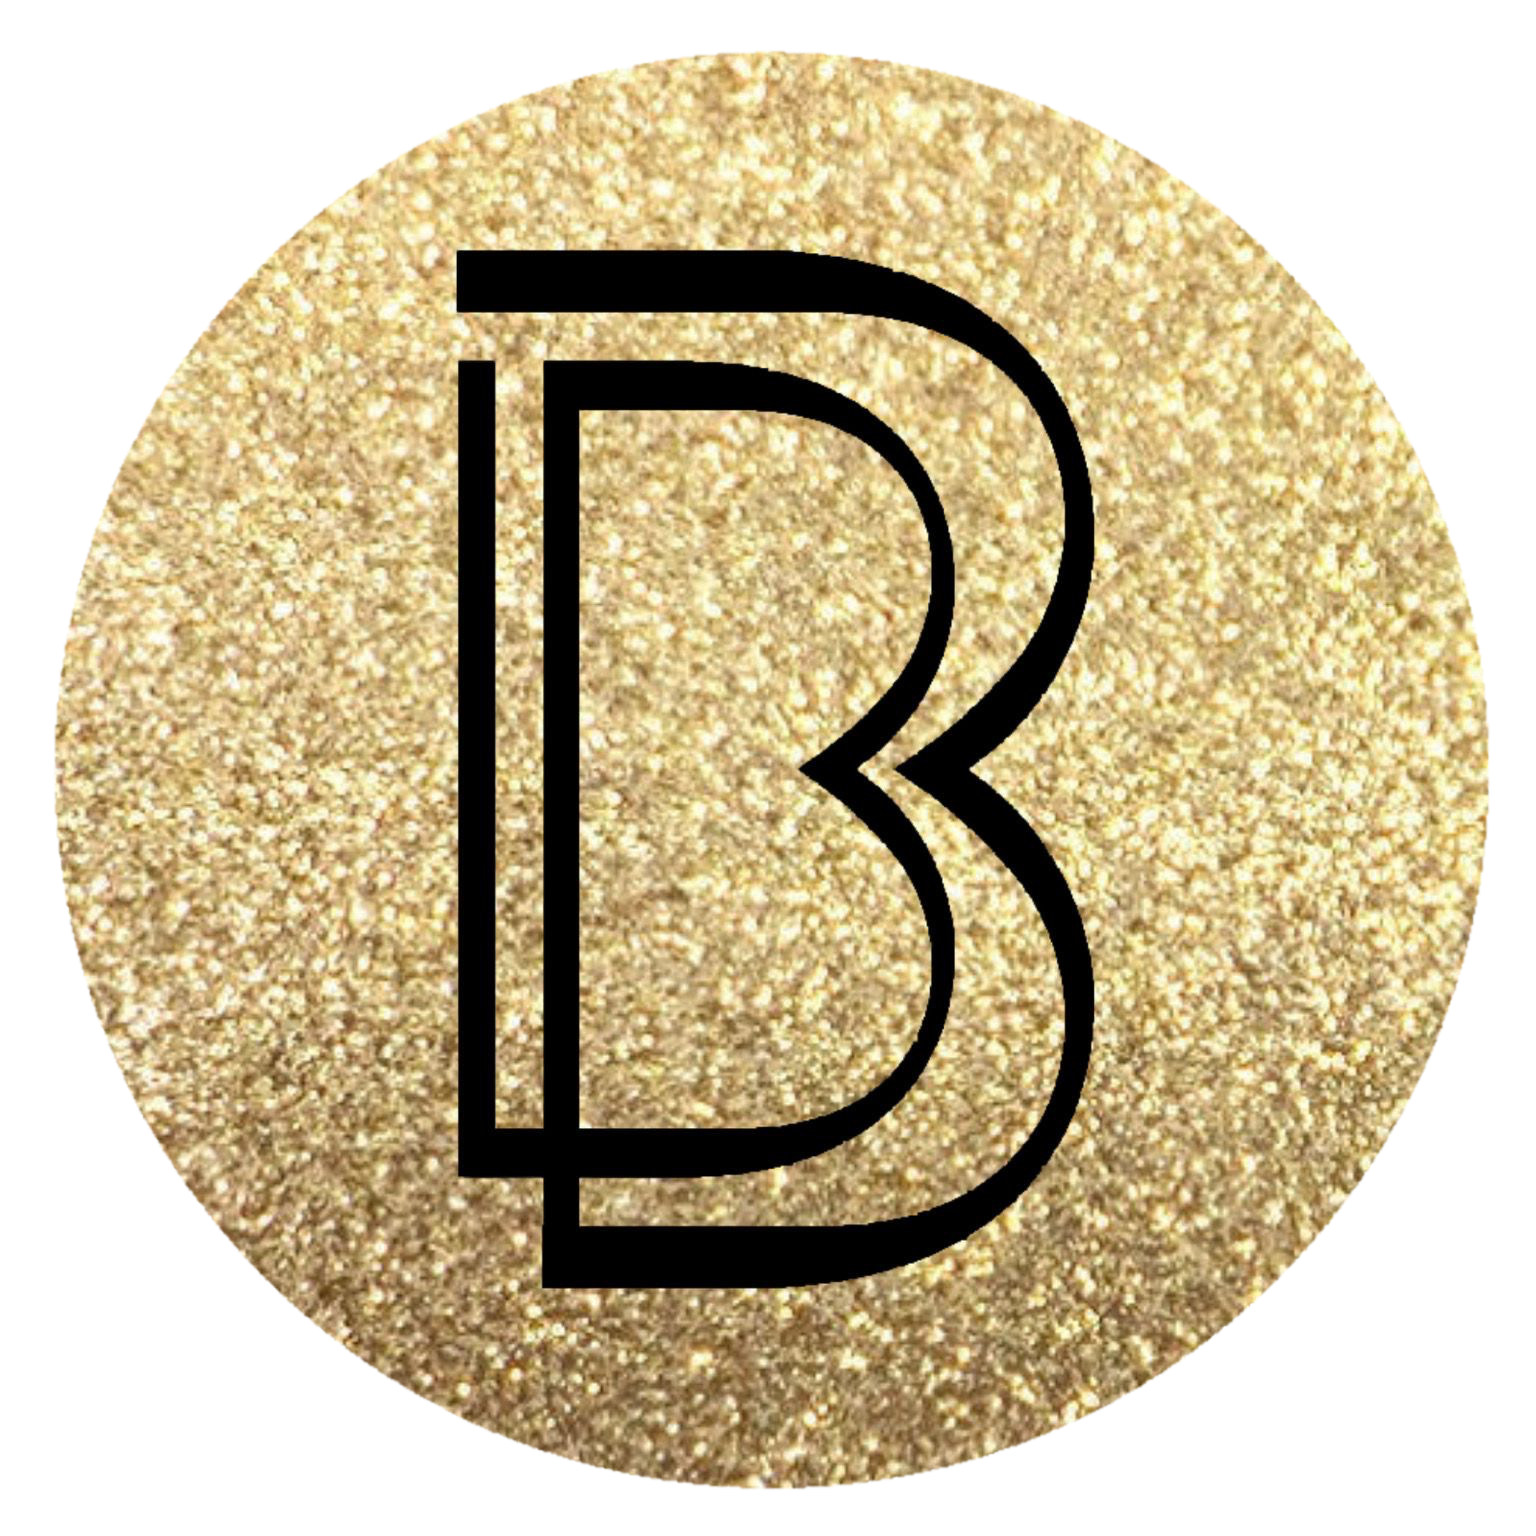 BeautiBal logo